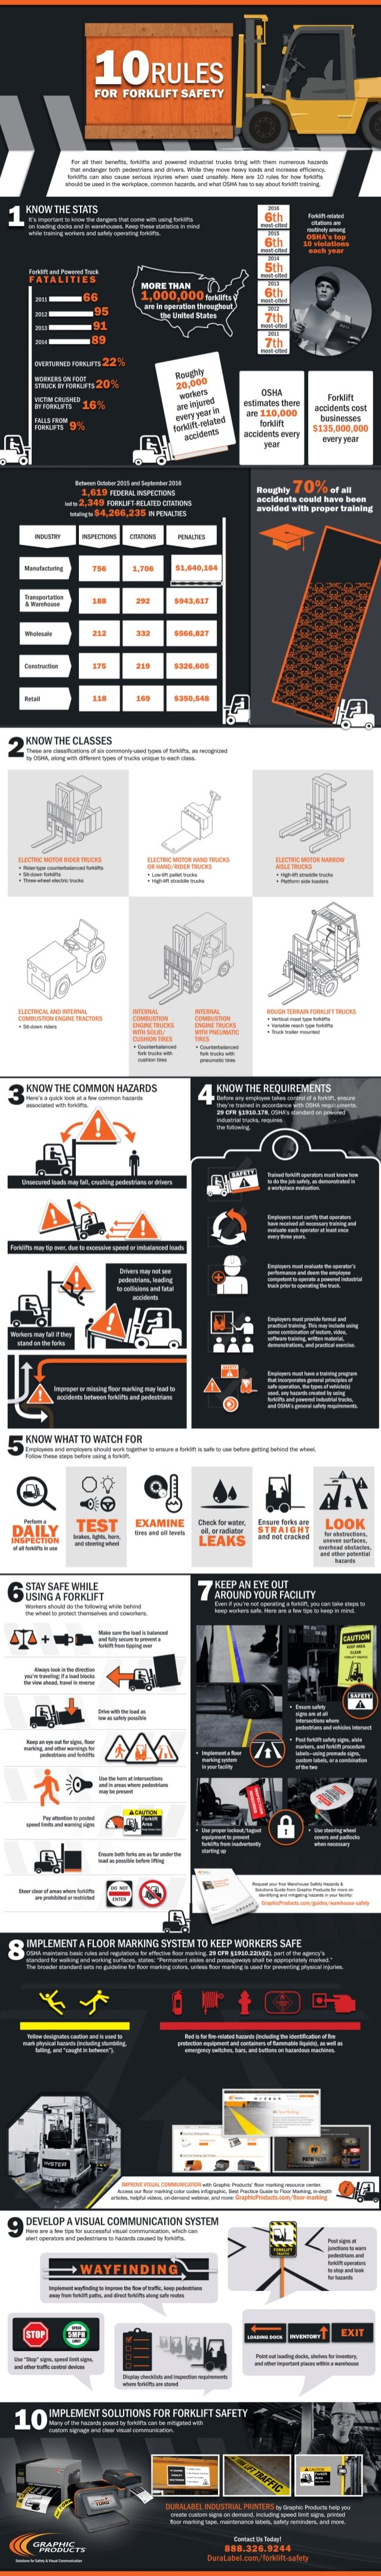 Forklift Safety Rules Infographic